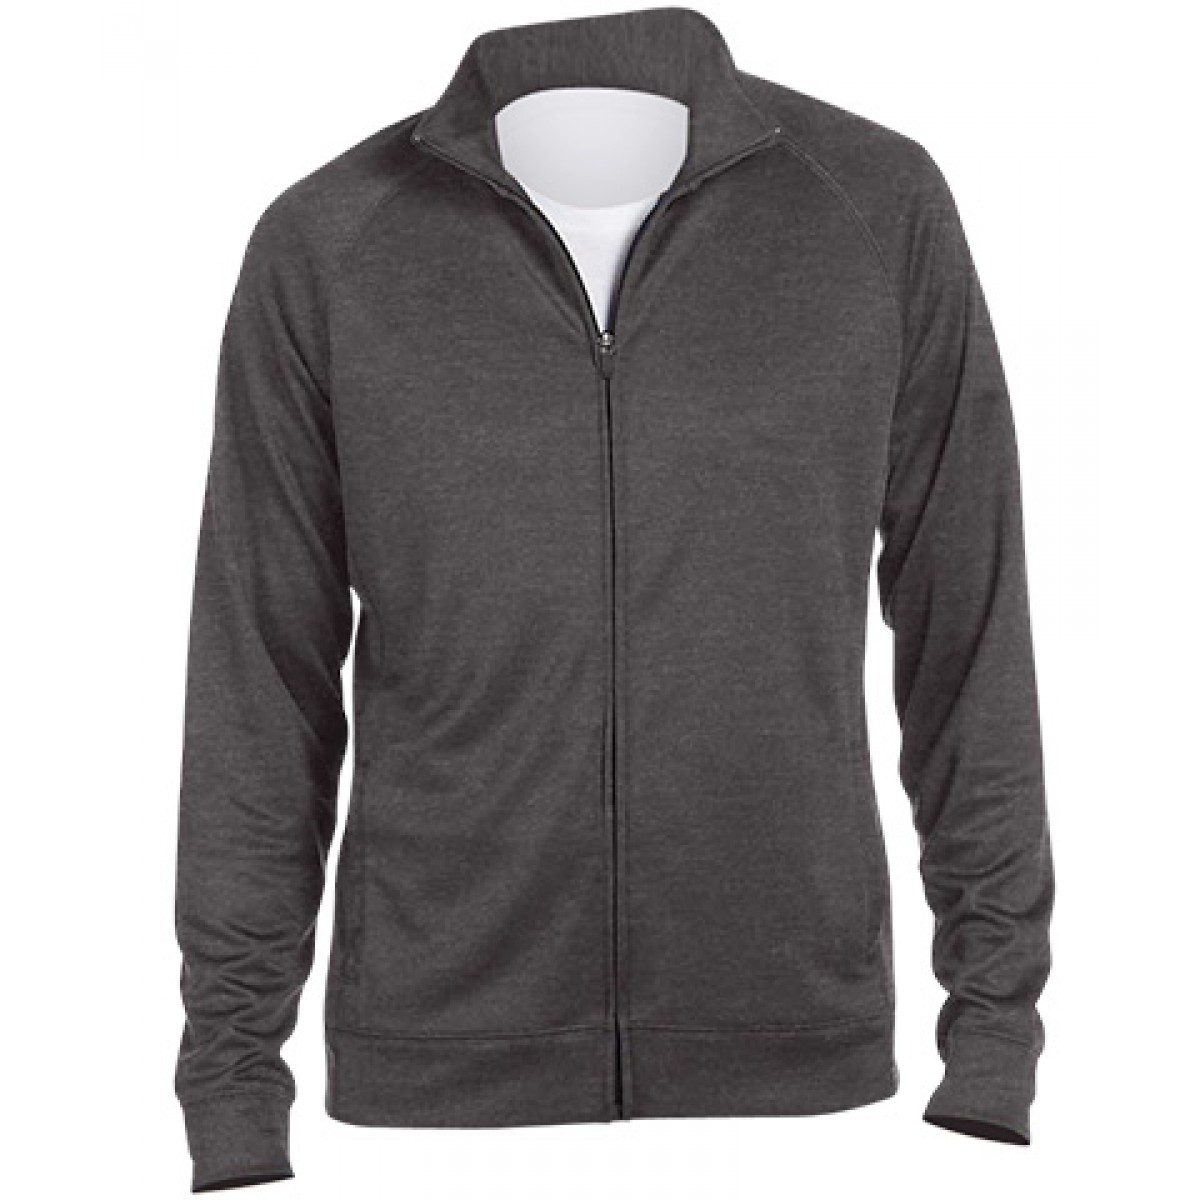 Men's Lightweight Sports Jacket-Sports Grey-S